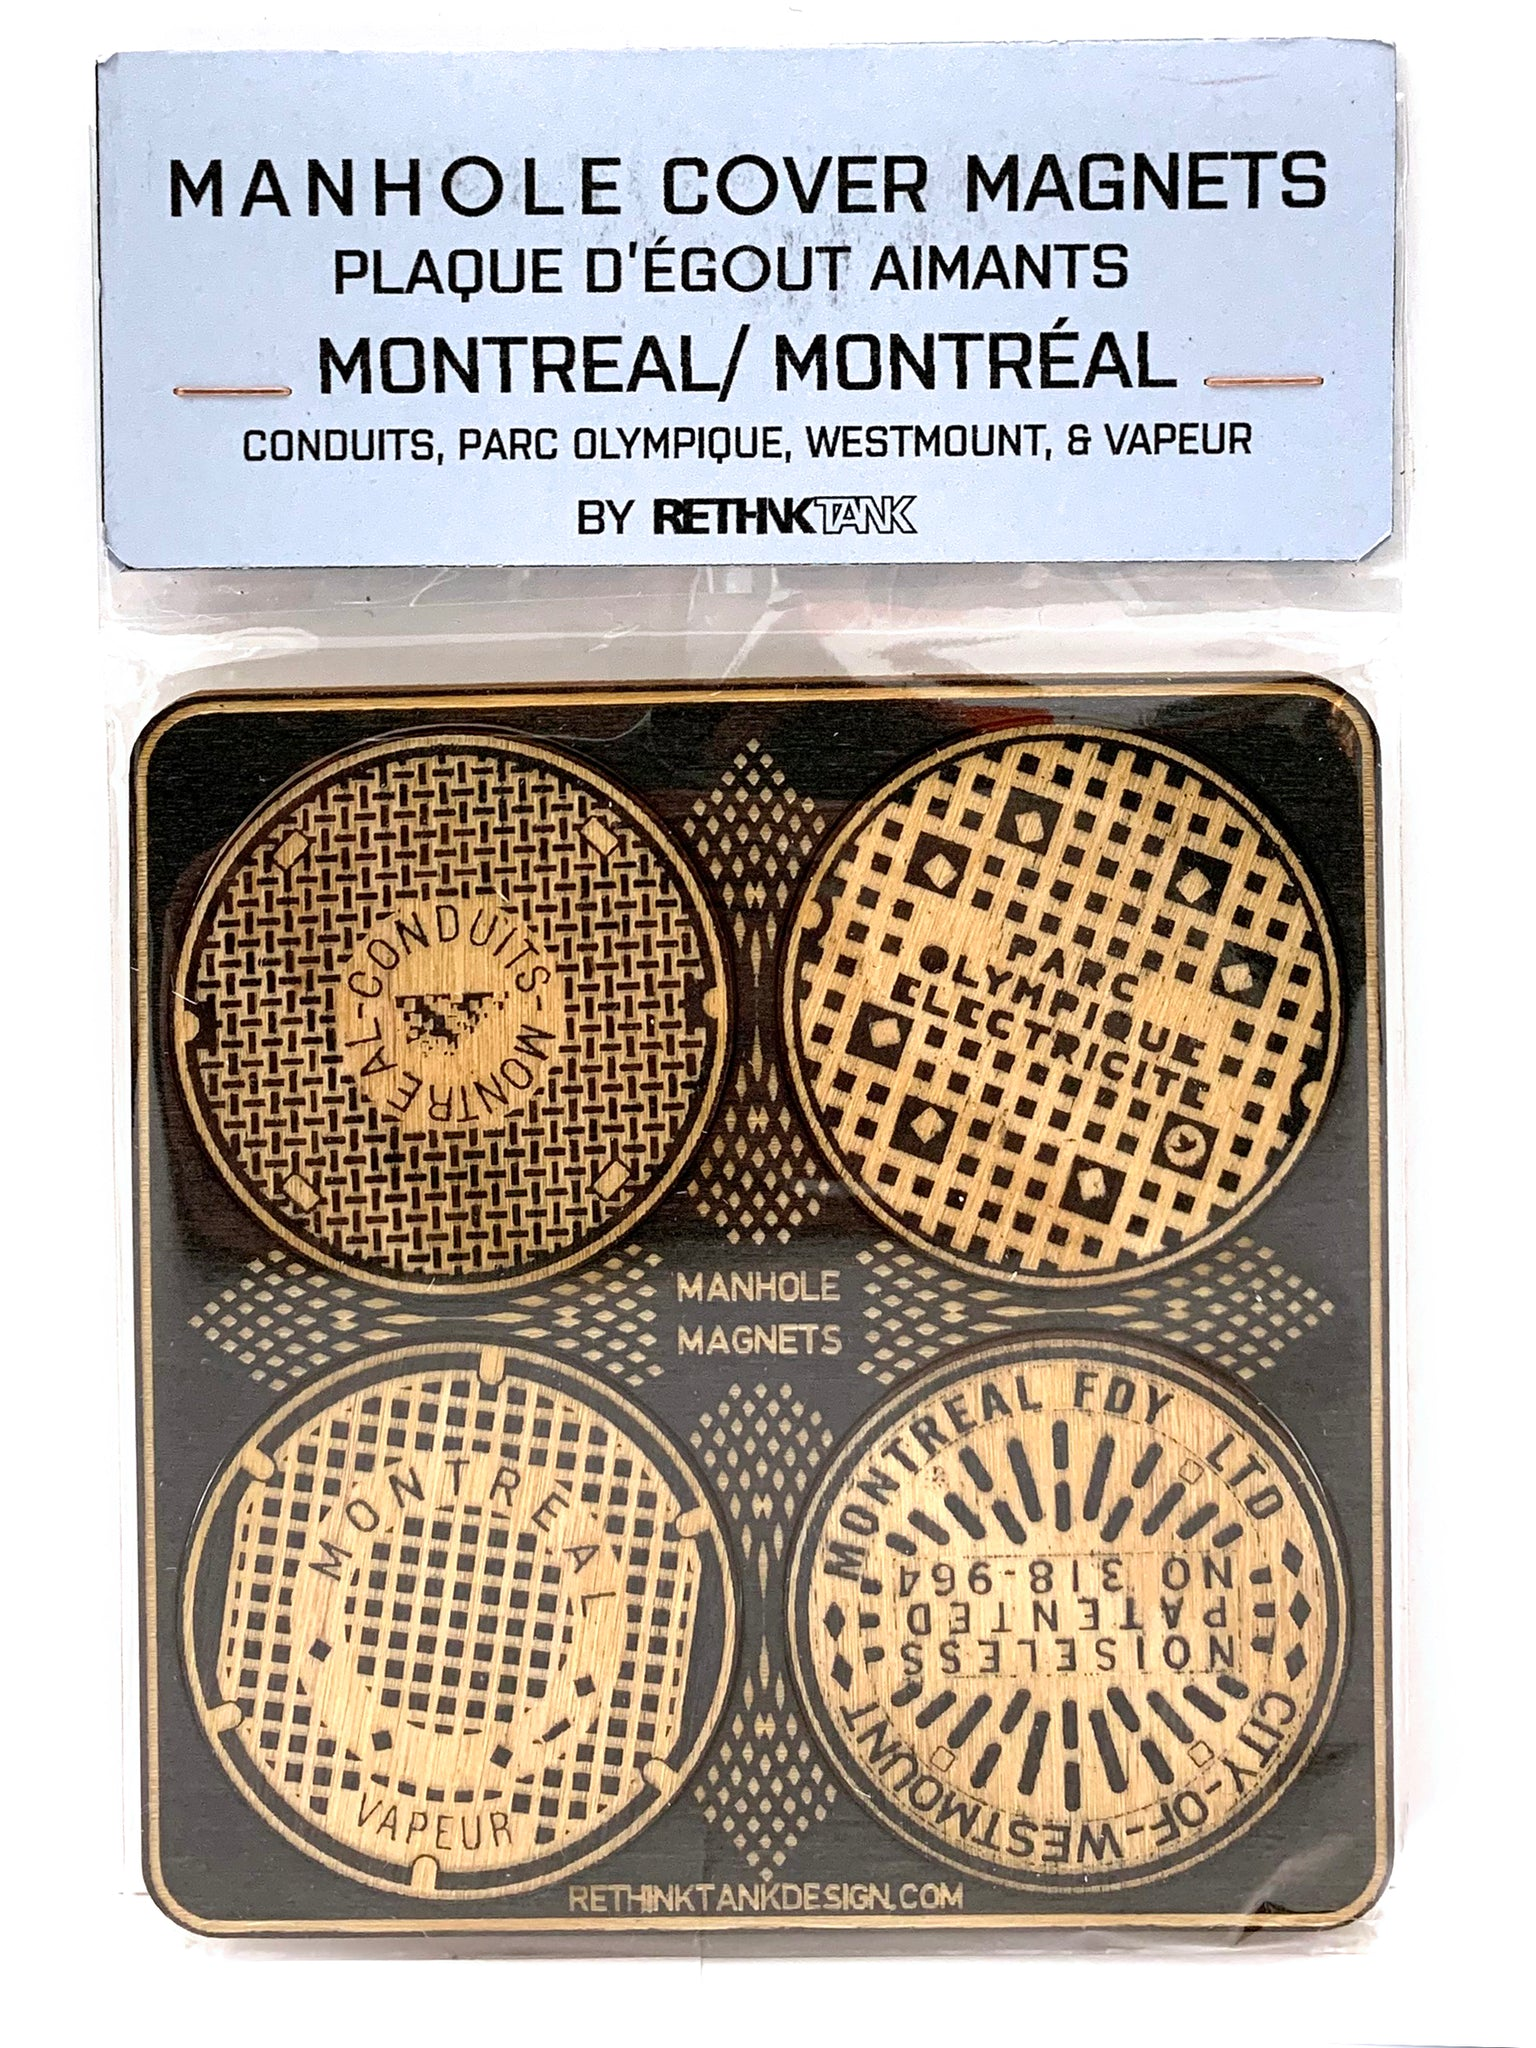 Montreal Manhole Magnets